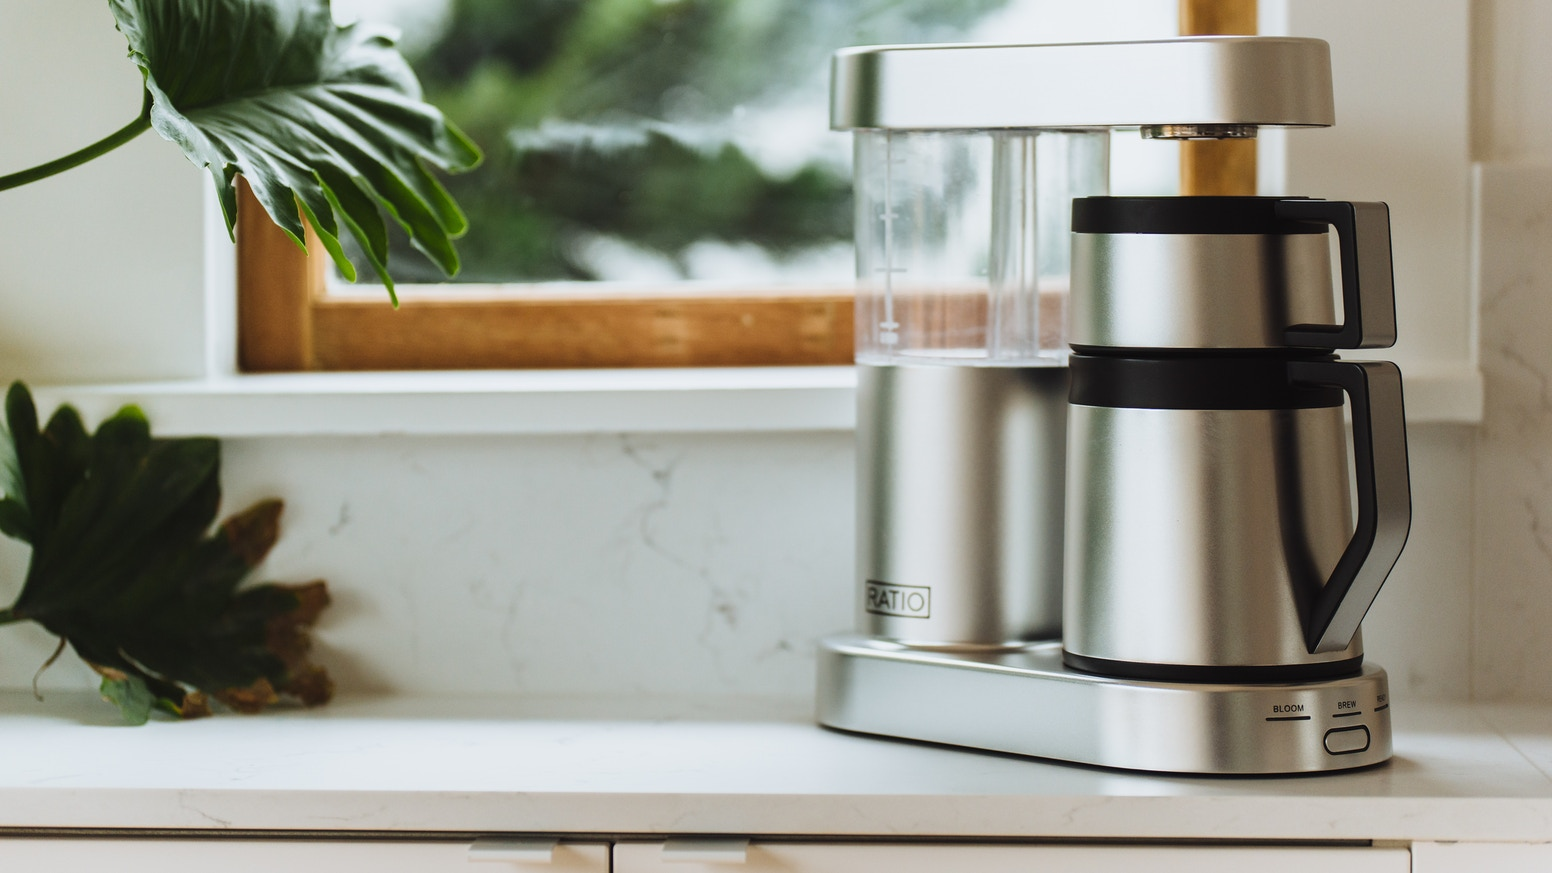 The Ratio Six is a modern, one button coffee maker for those that *love* coffee. Finally, enjoy convenience without compromise.